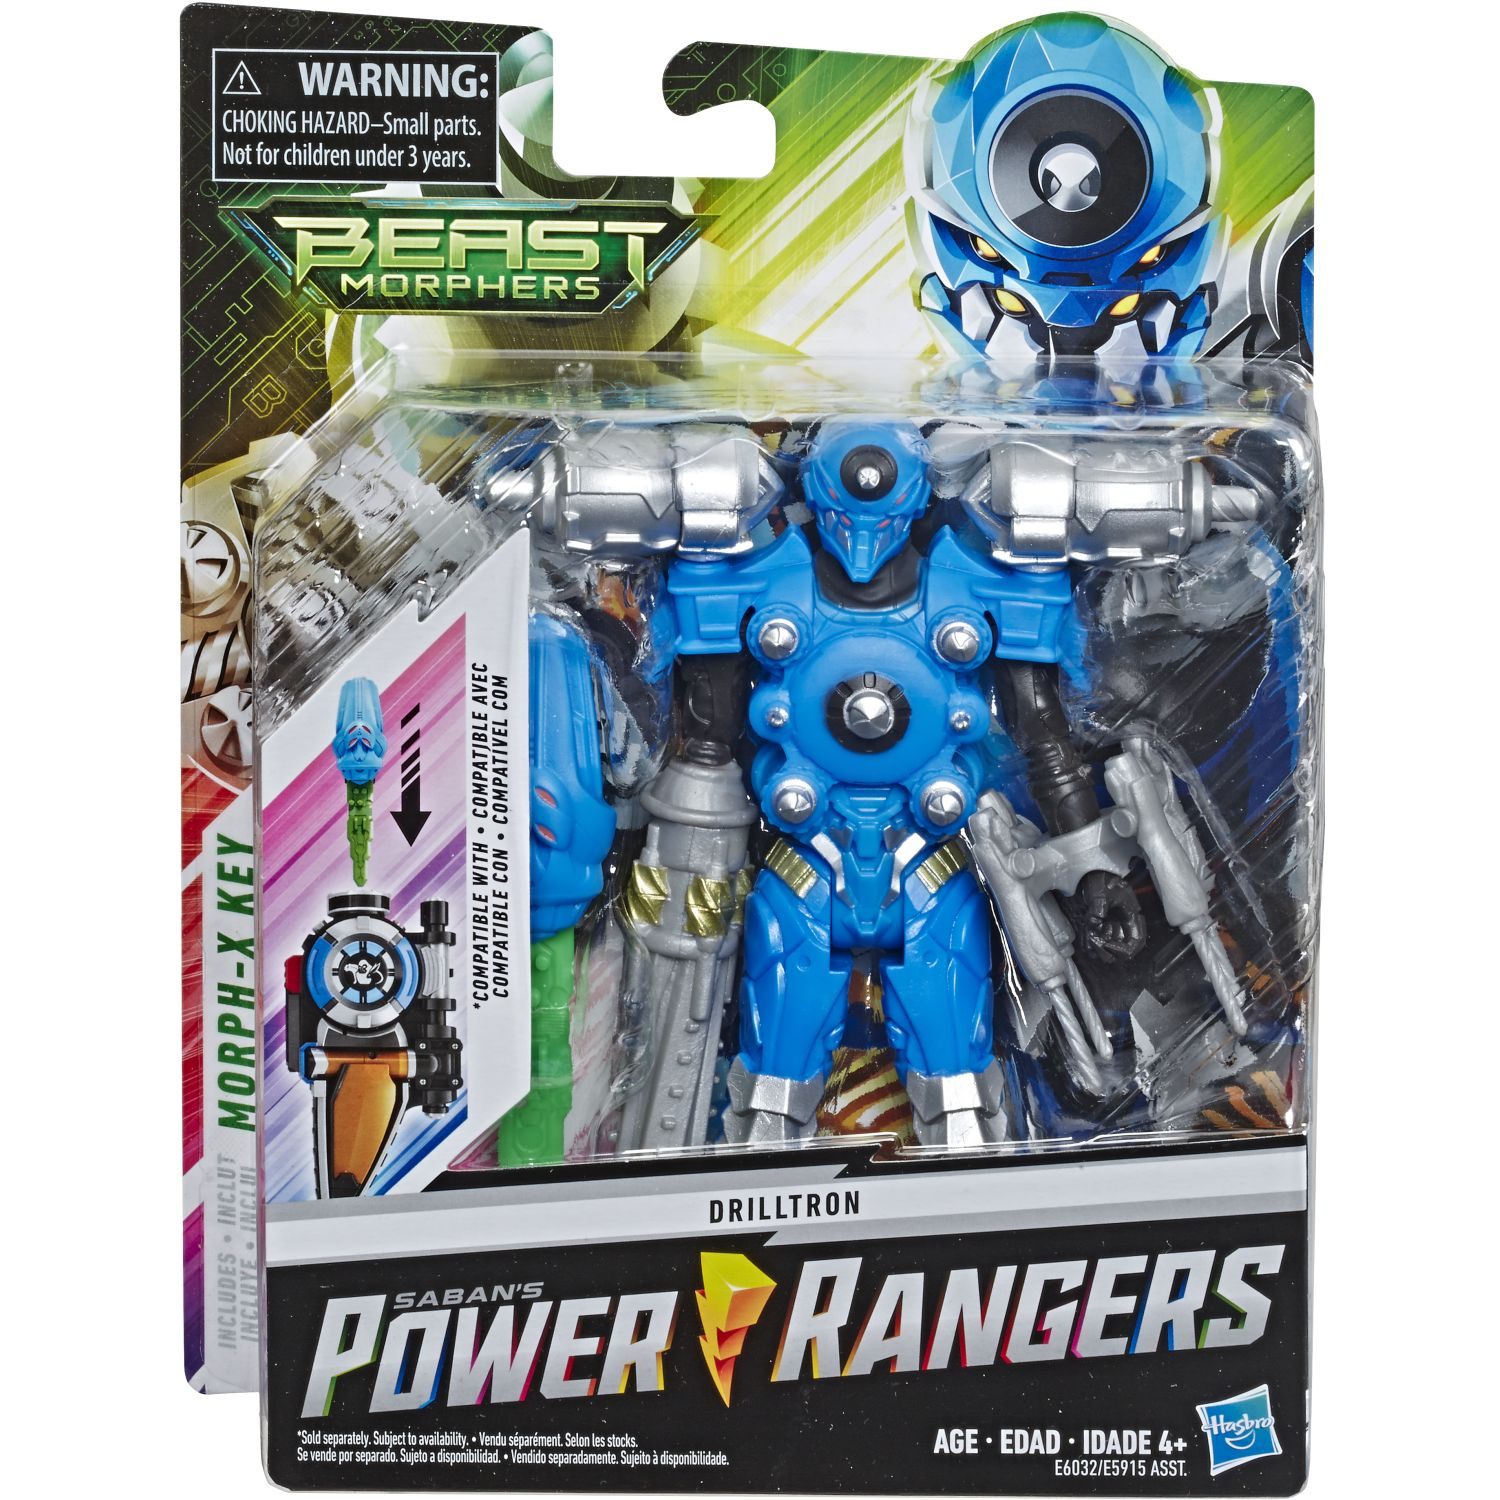 POWER RANGERS PRG 6IN BMR DRILLTRON FIGURE Varios Figuras de Acción